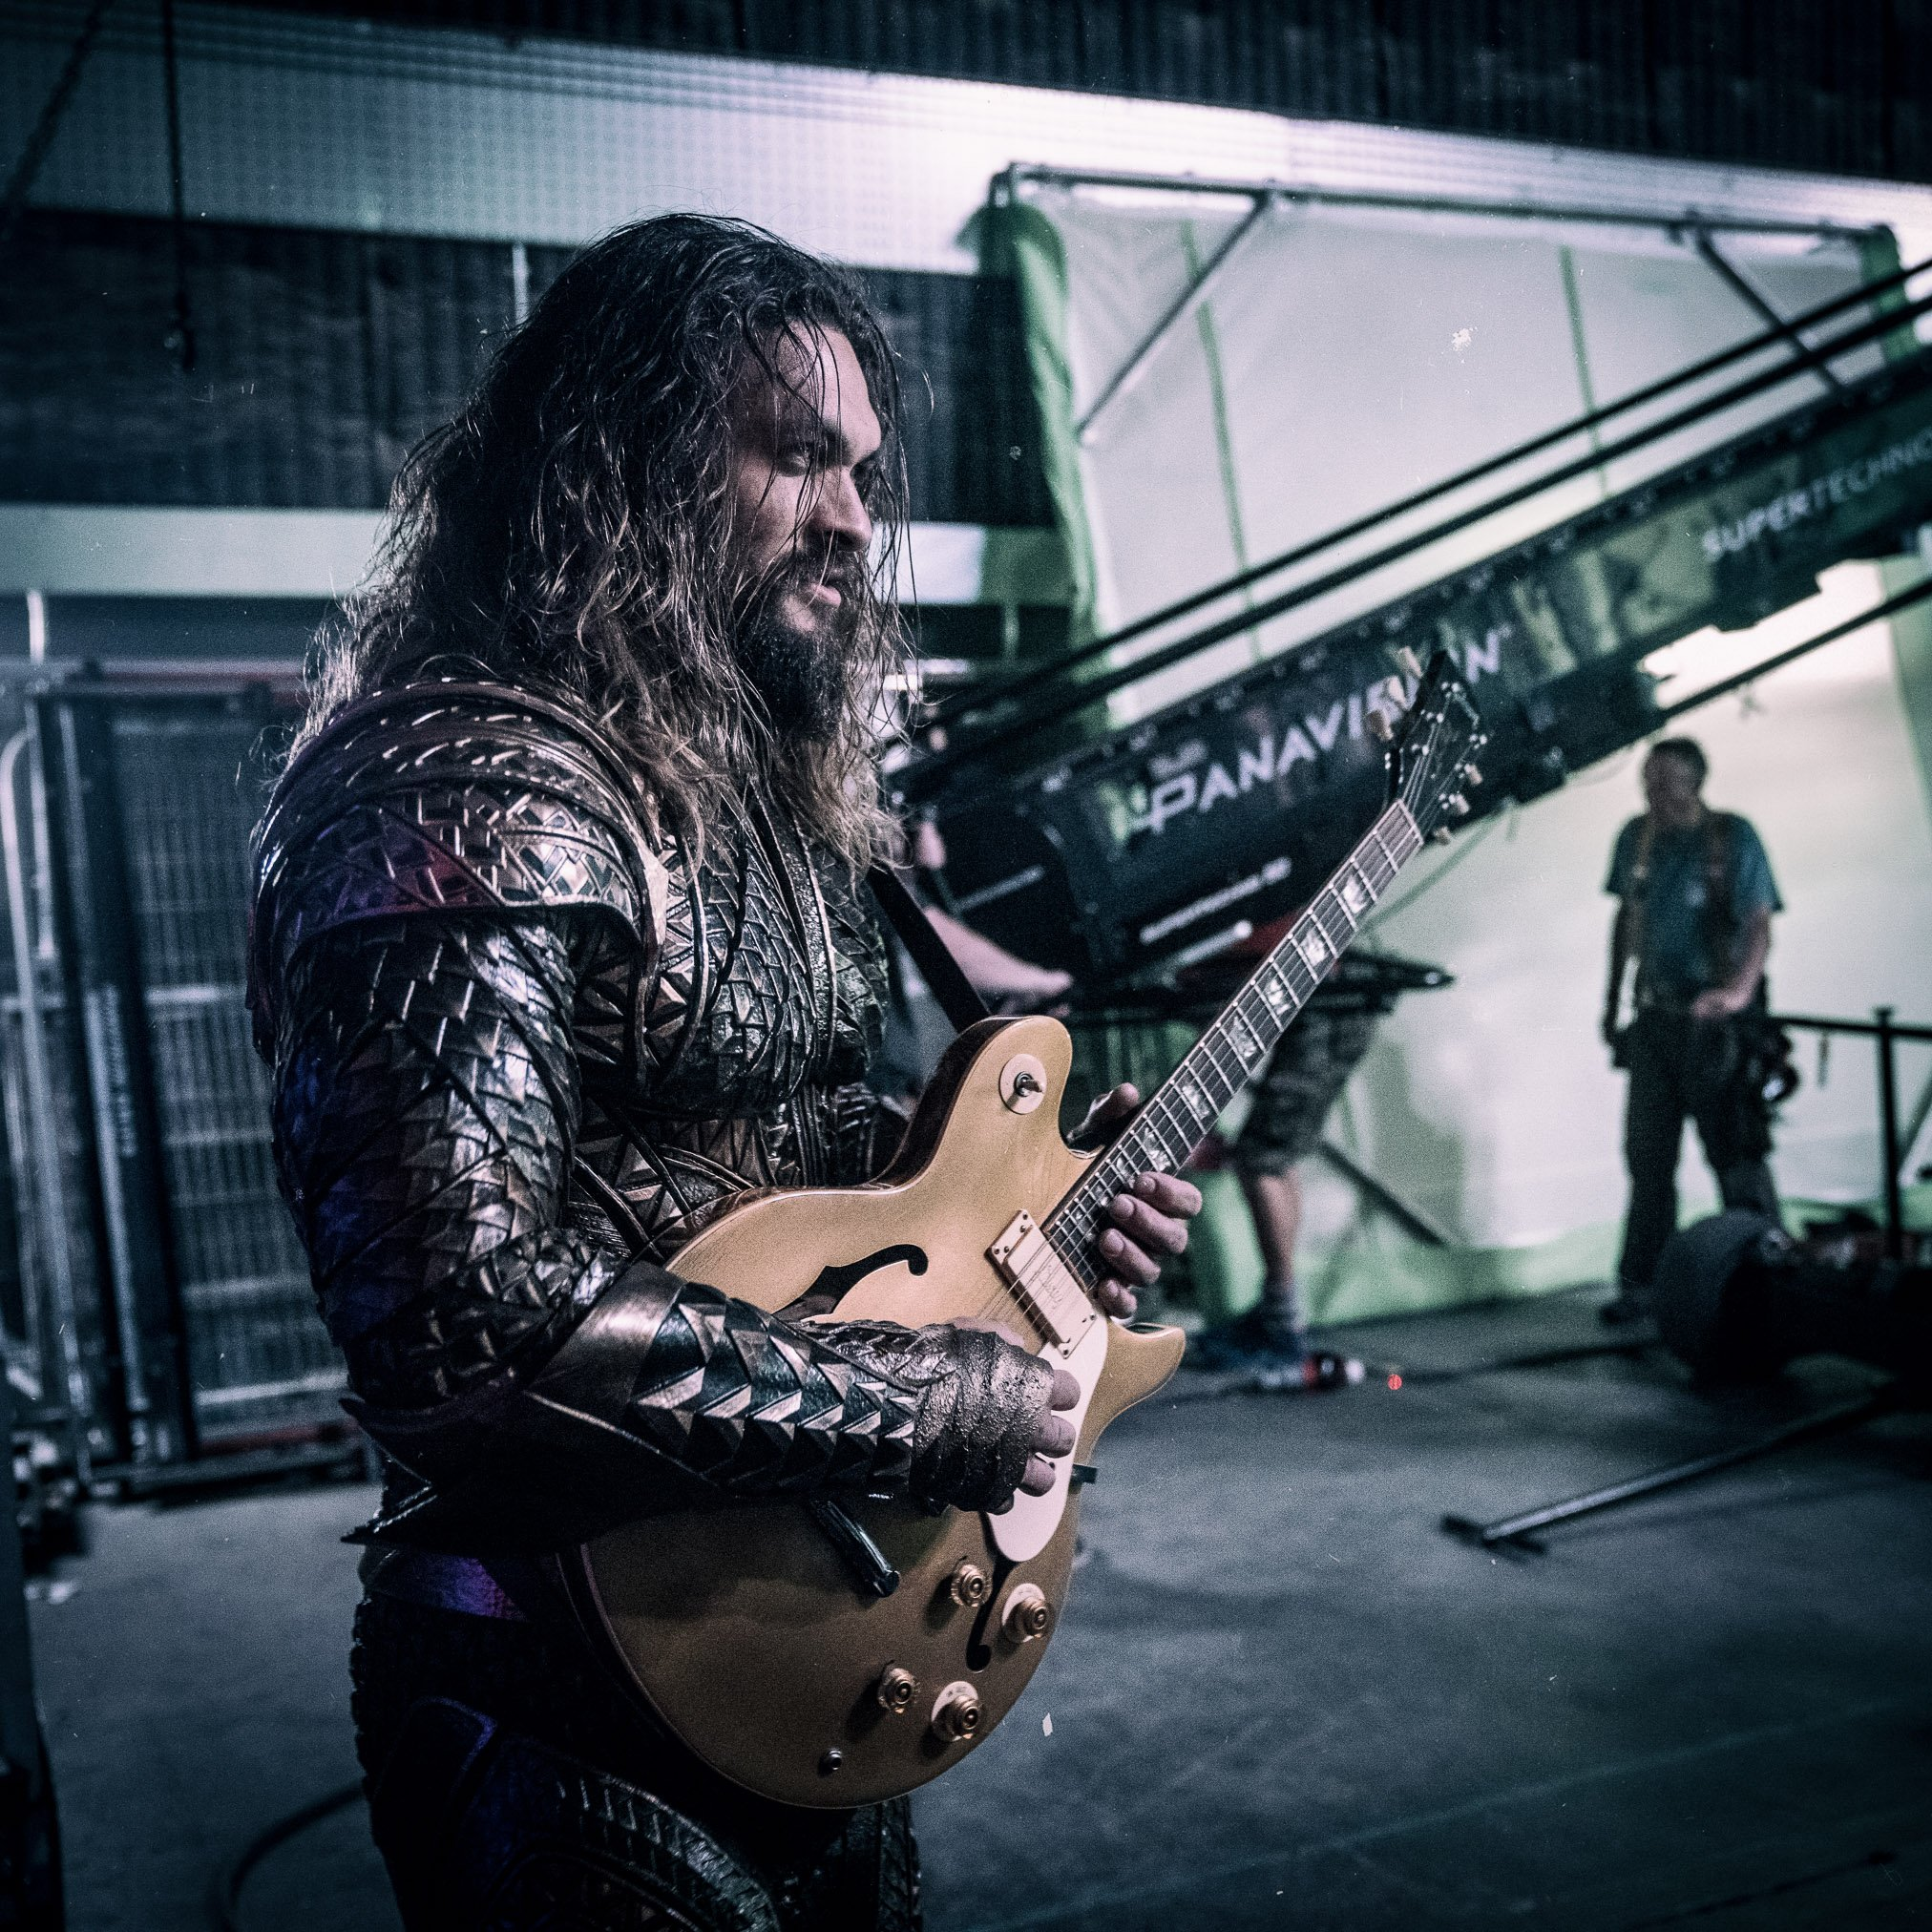 Aquaman Trades His Trident for an Axe in New Justice League Image